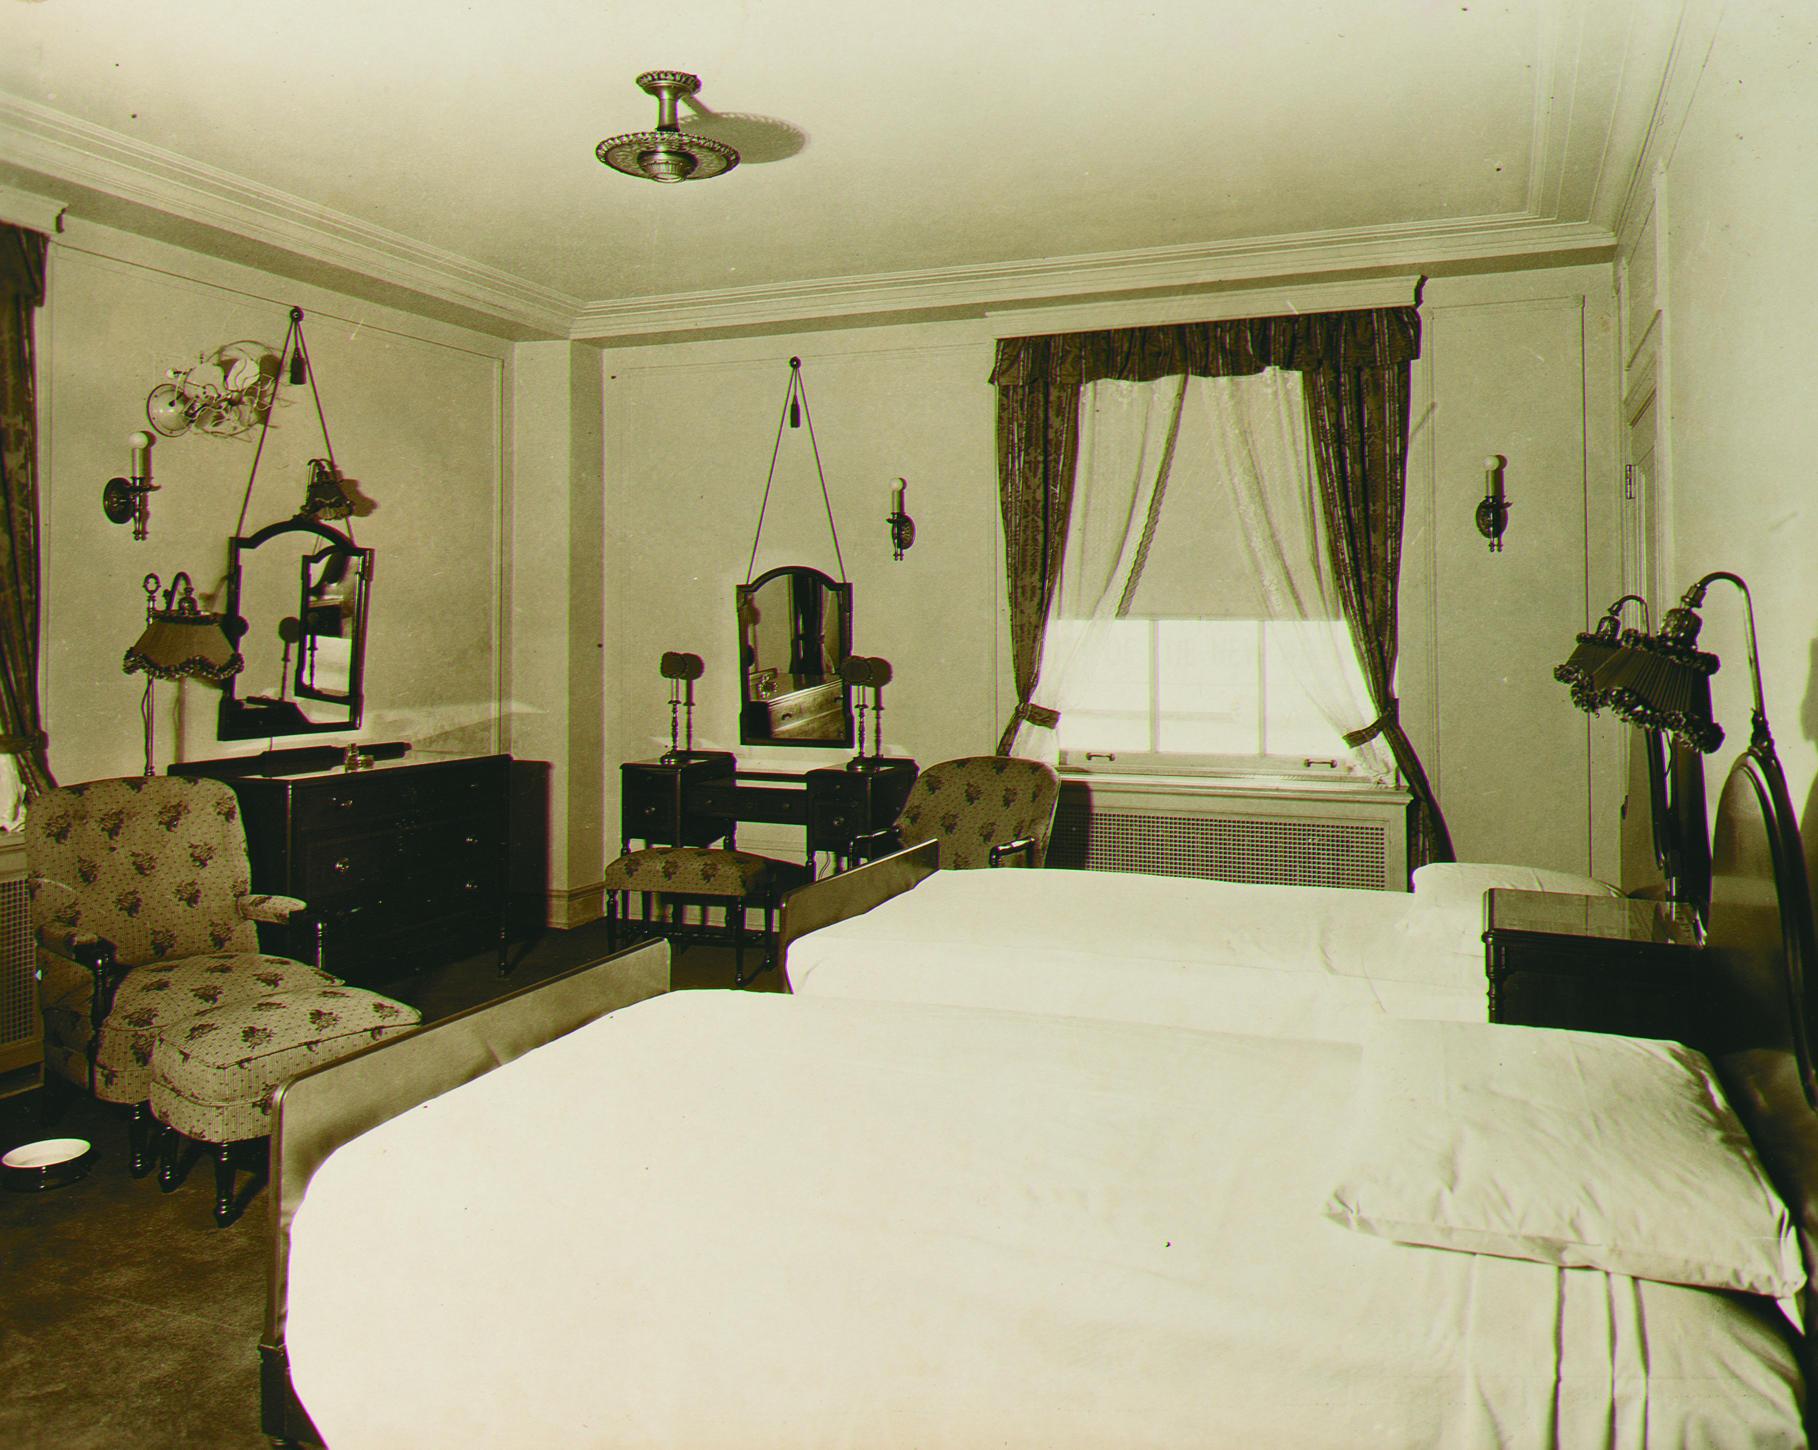 Peabody Hotel Room 1925 Likely A Corner Courtesy Of The